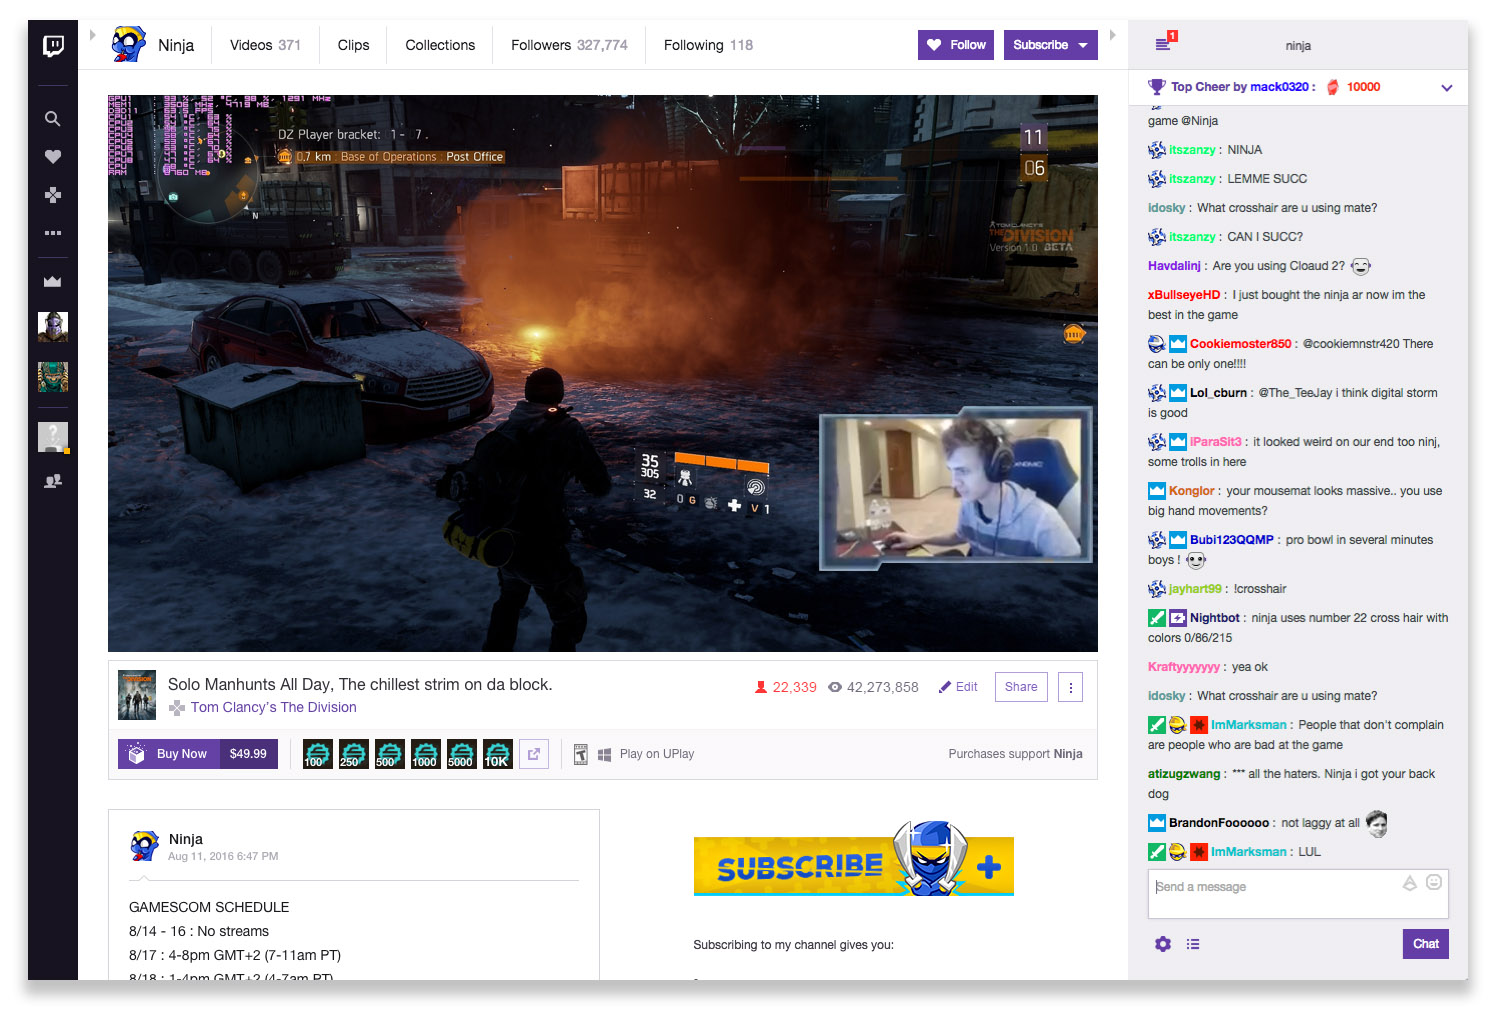 Soon you will be able to buy games directly through Twitch streamers